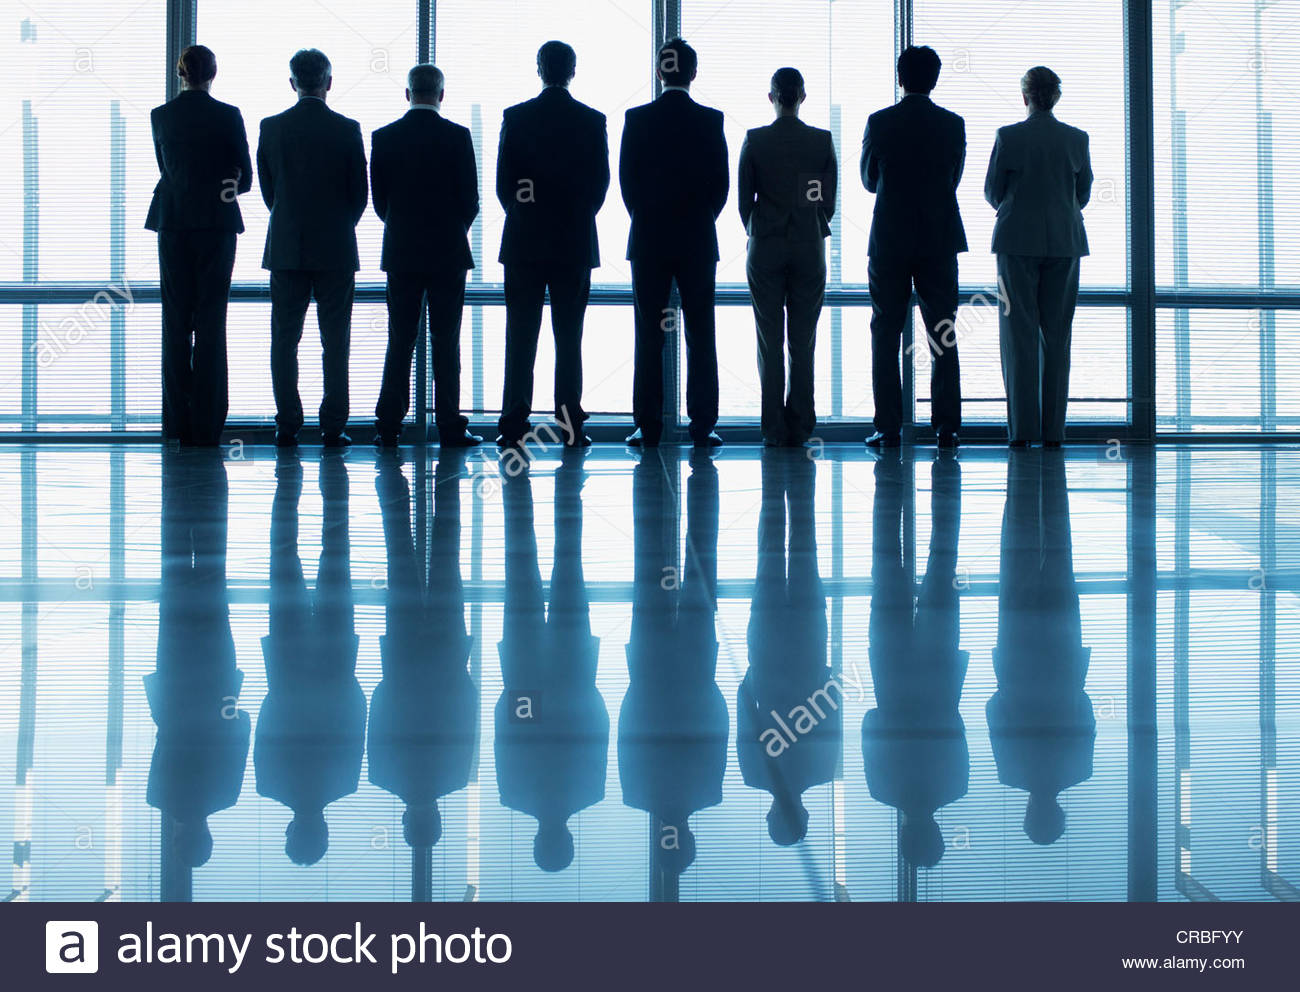 Silhouette de gens d'affaires de suite à la fenêtre du hall des Photo Stock